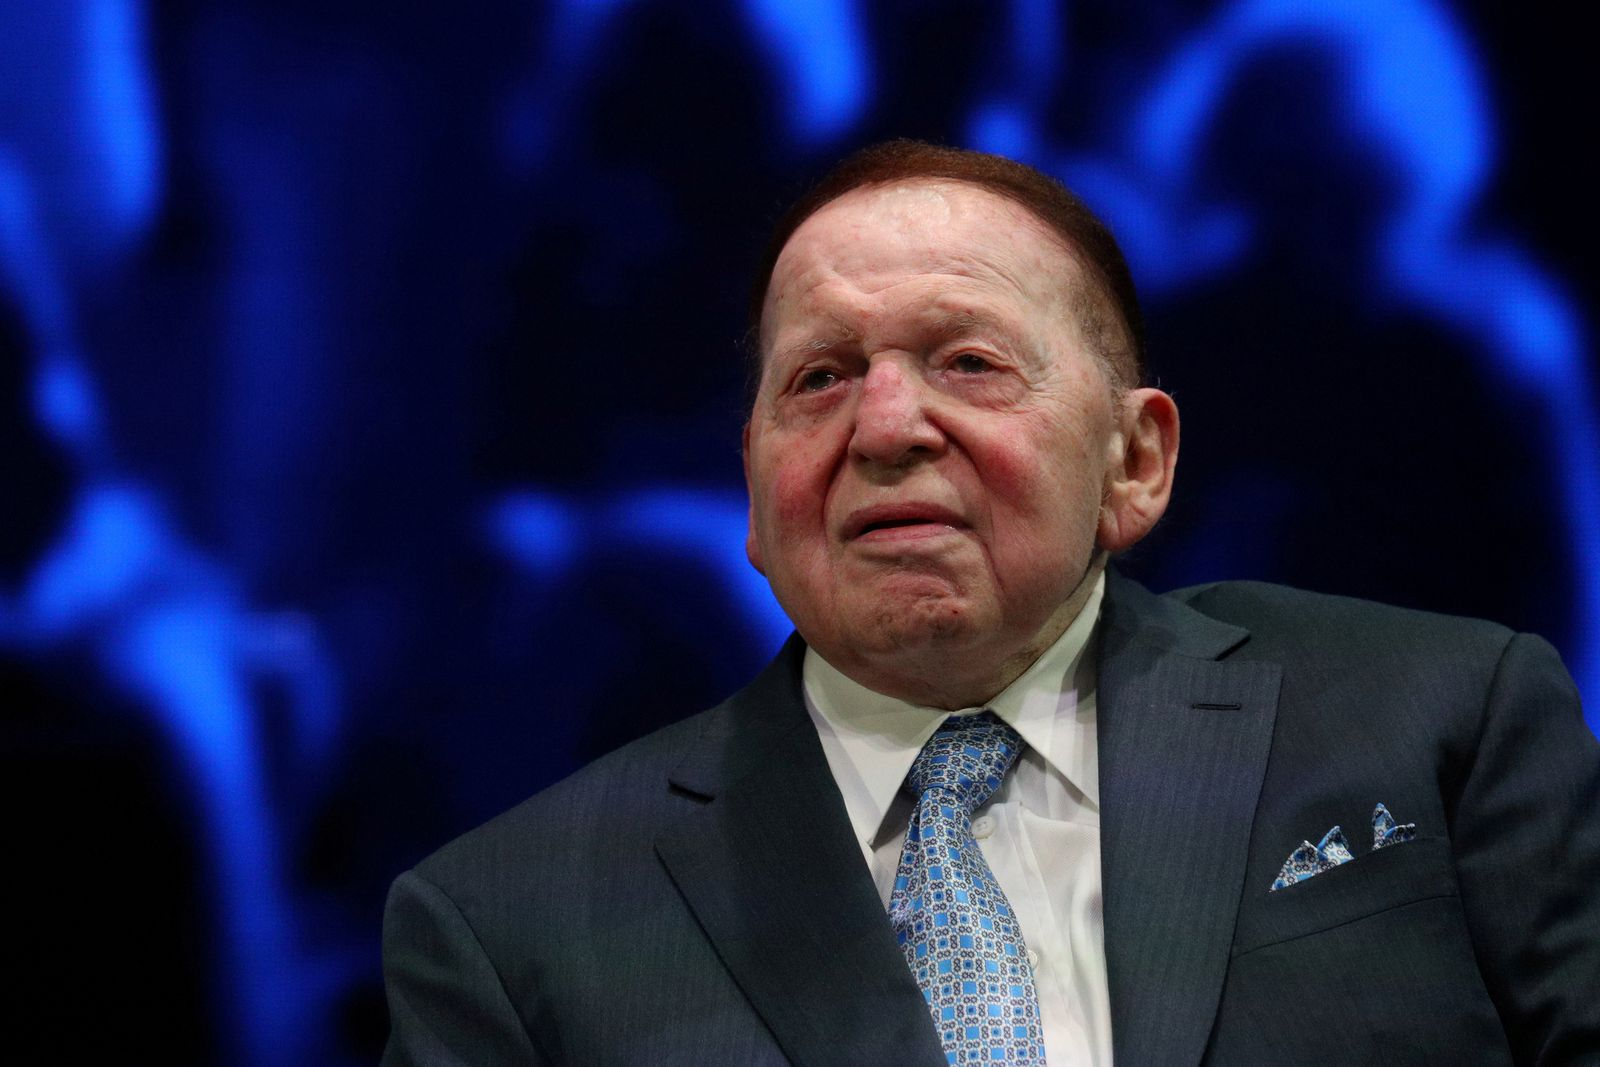 FILE PHOTO: FILE PHOTO: Sheldon Adelson sits onstage before a speech by U.S. President Trump at the Israeli American Council National Summit in Hollywood, Florida